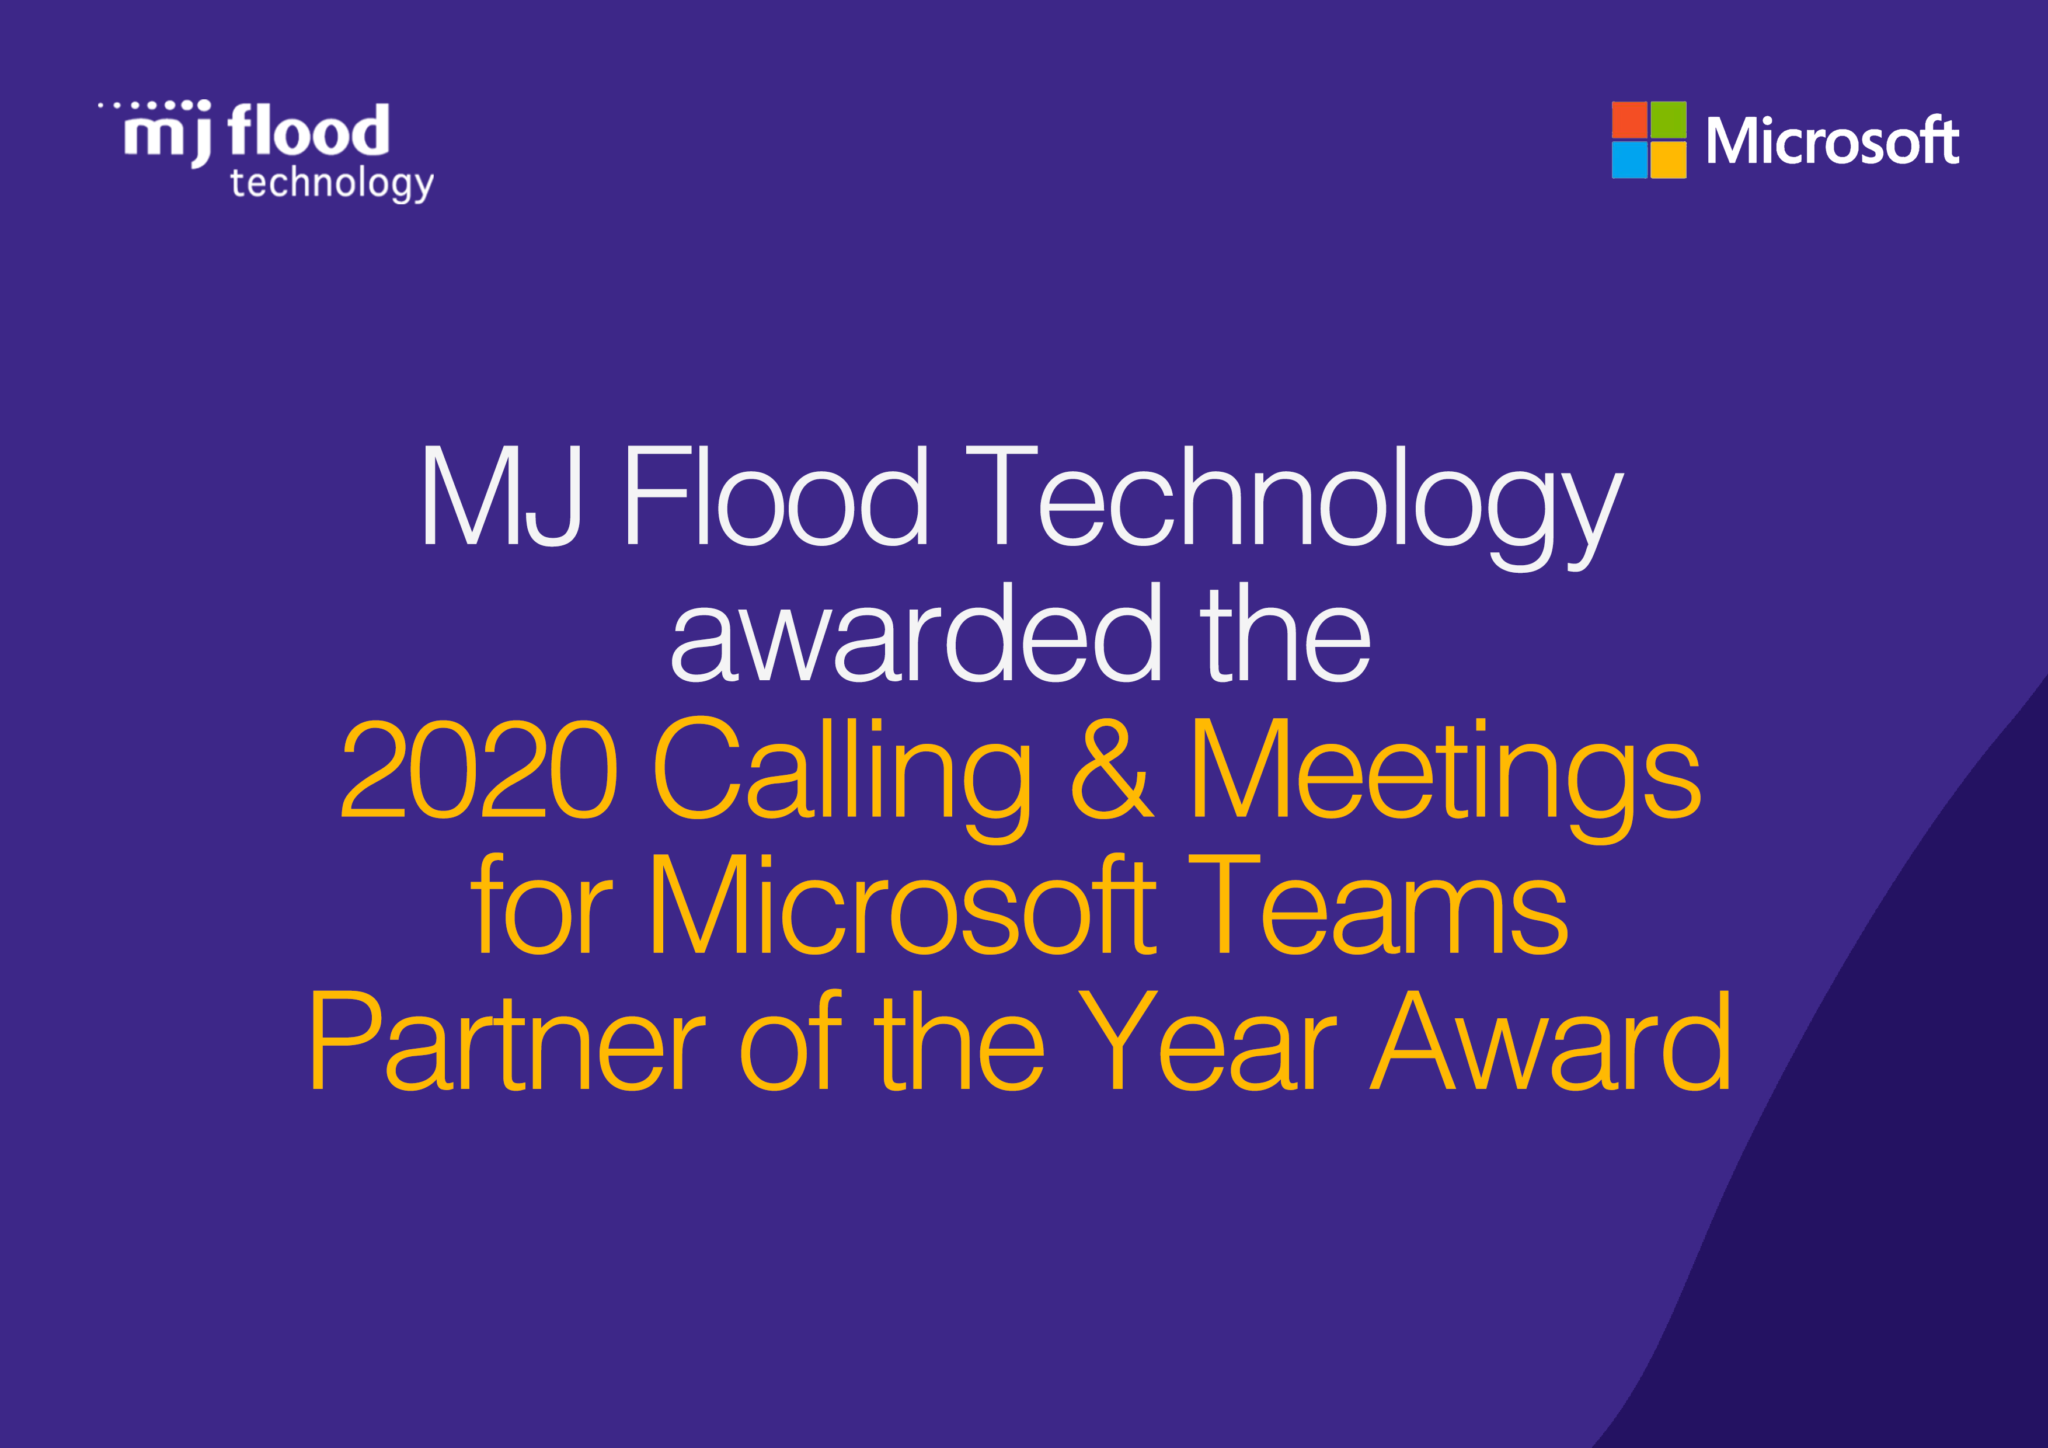 MJ Flood Technology wins 2020 Calling & Meetings for Microsoft Teams Partner of the Year Award